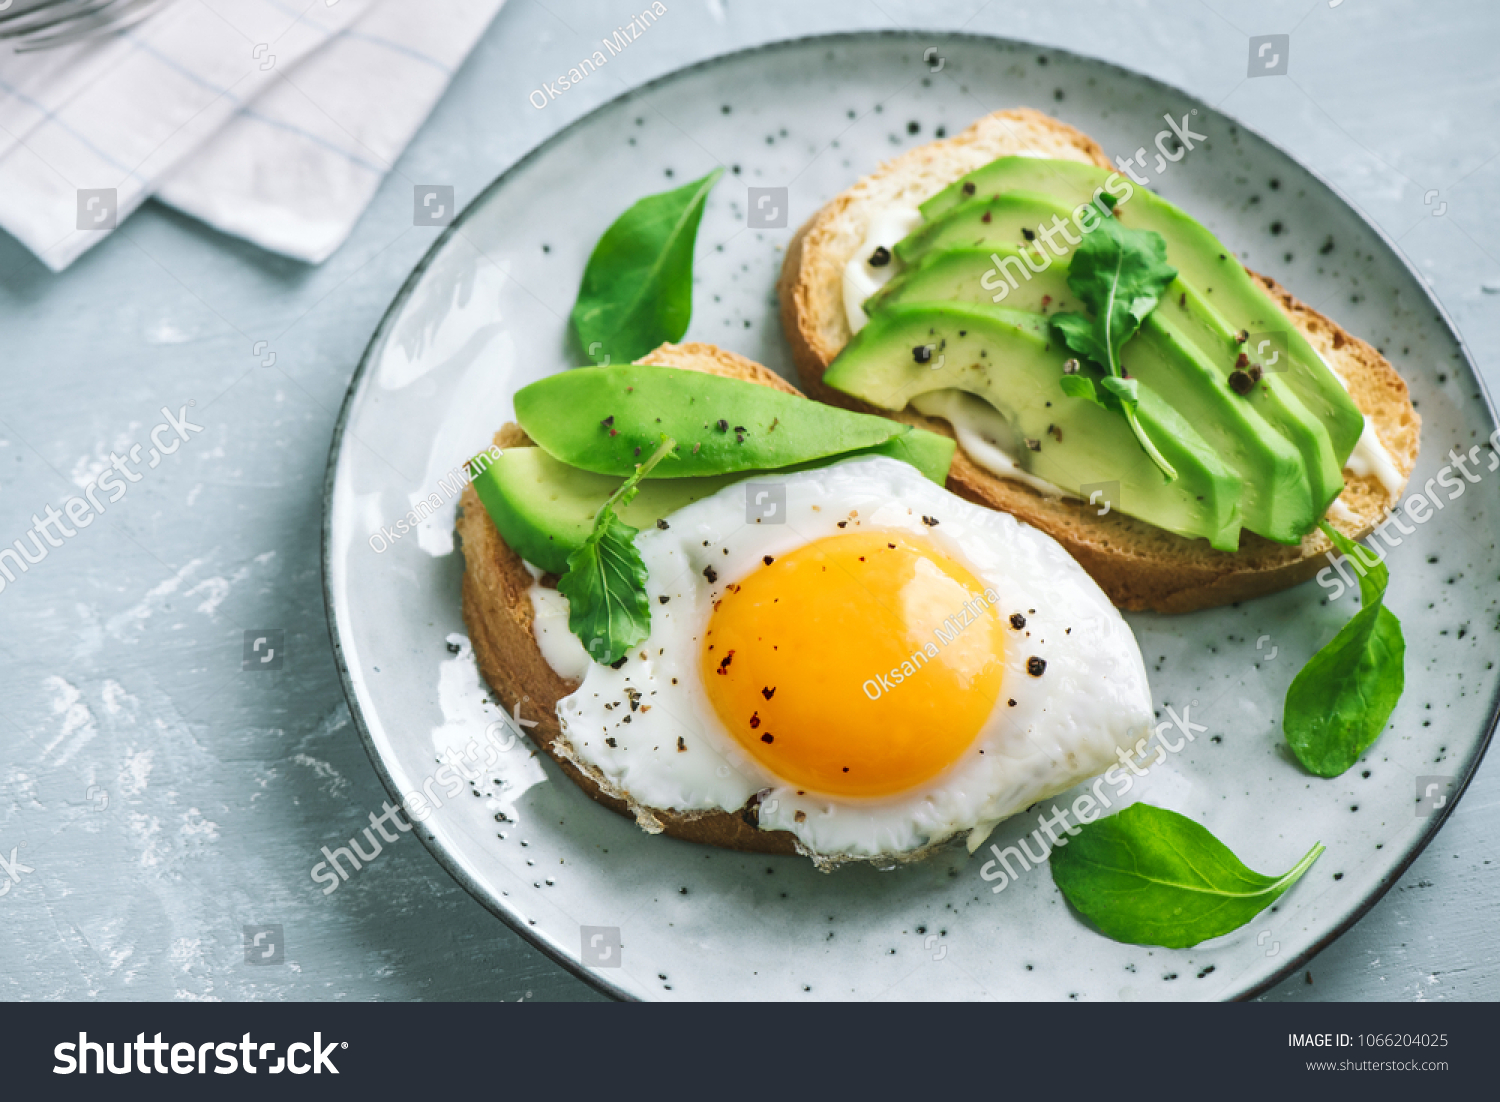 Avocado Sandwich with Fried Egg - sliced avocado and  egg on toasted bread with arugula for healthy breakfast or snack. #1066204025